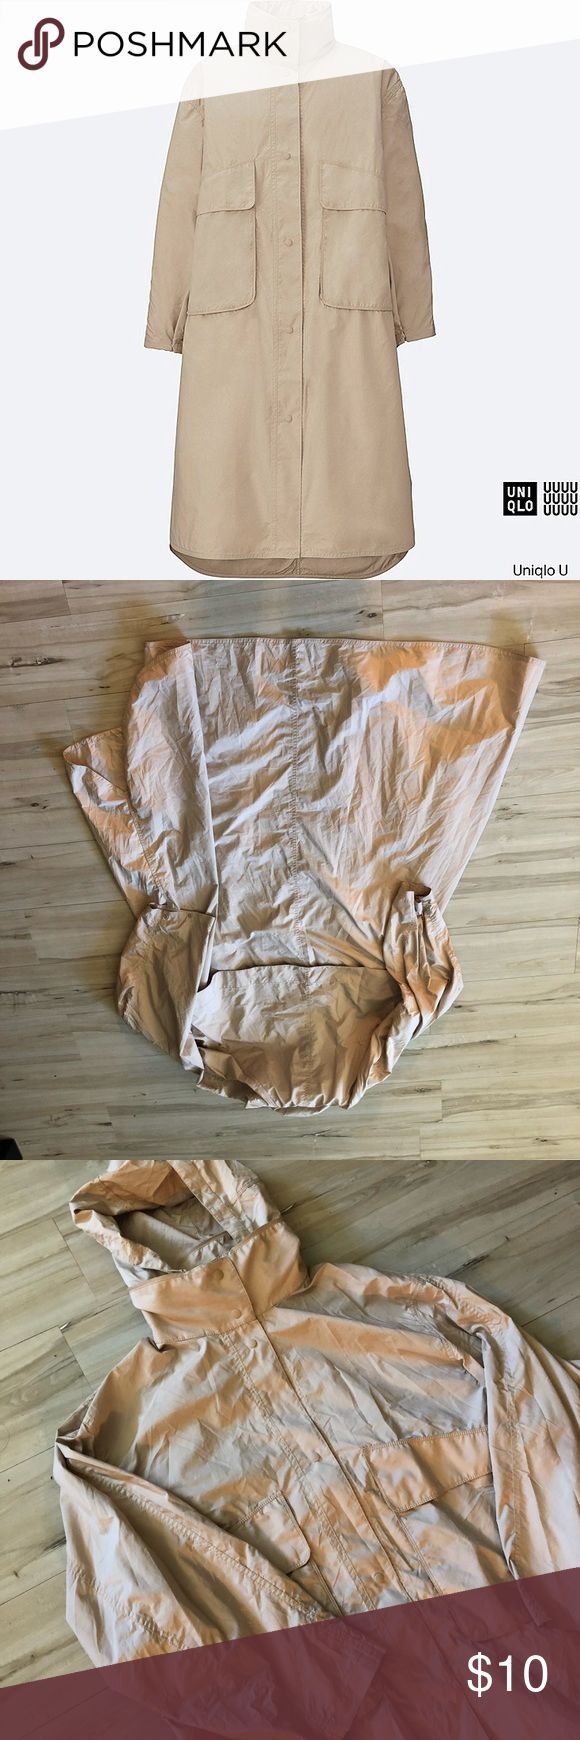 Uniqlo U Oversized Trench In excellent condition only worn once. Gives you a sweet avant-garde look a la issey miyake. Uniqlo Jackets & Coats Trench Coats